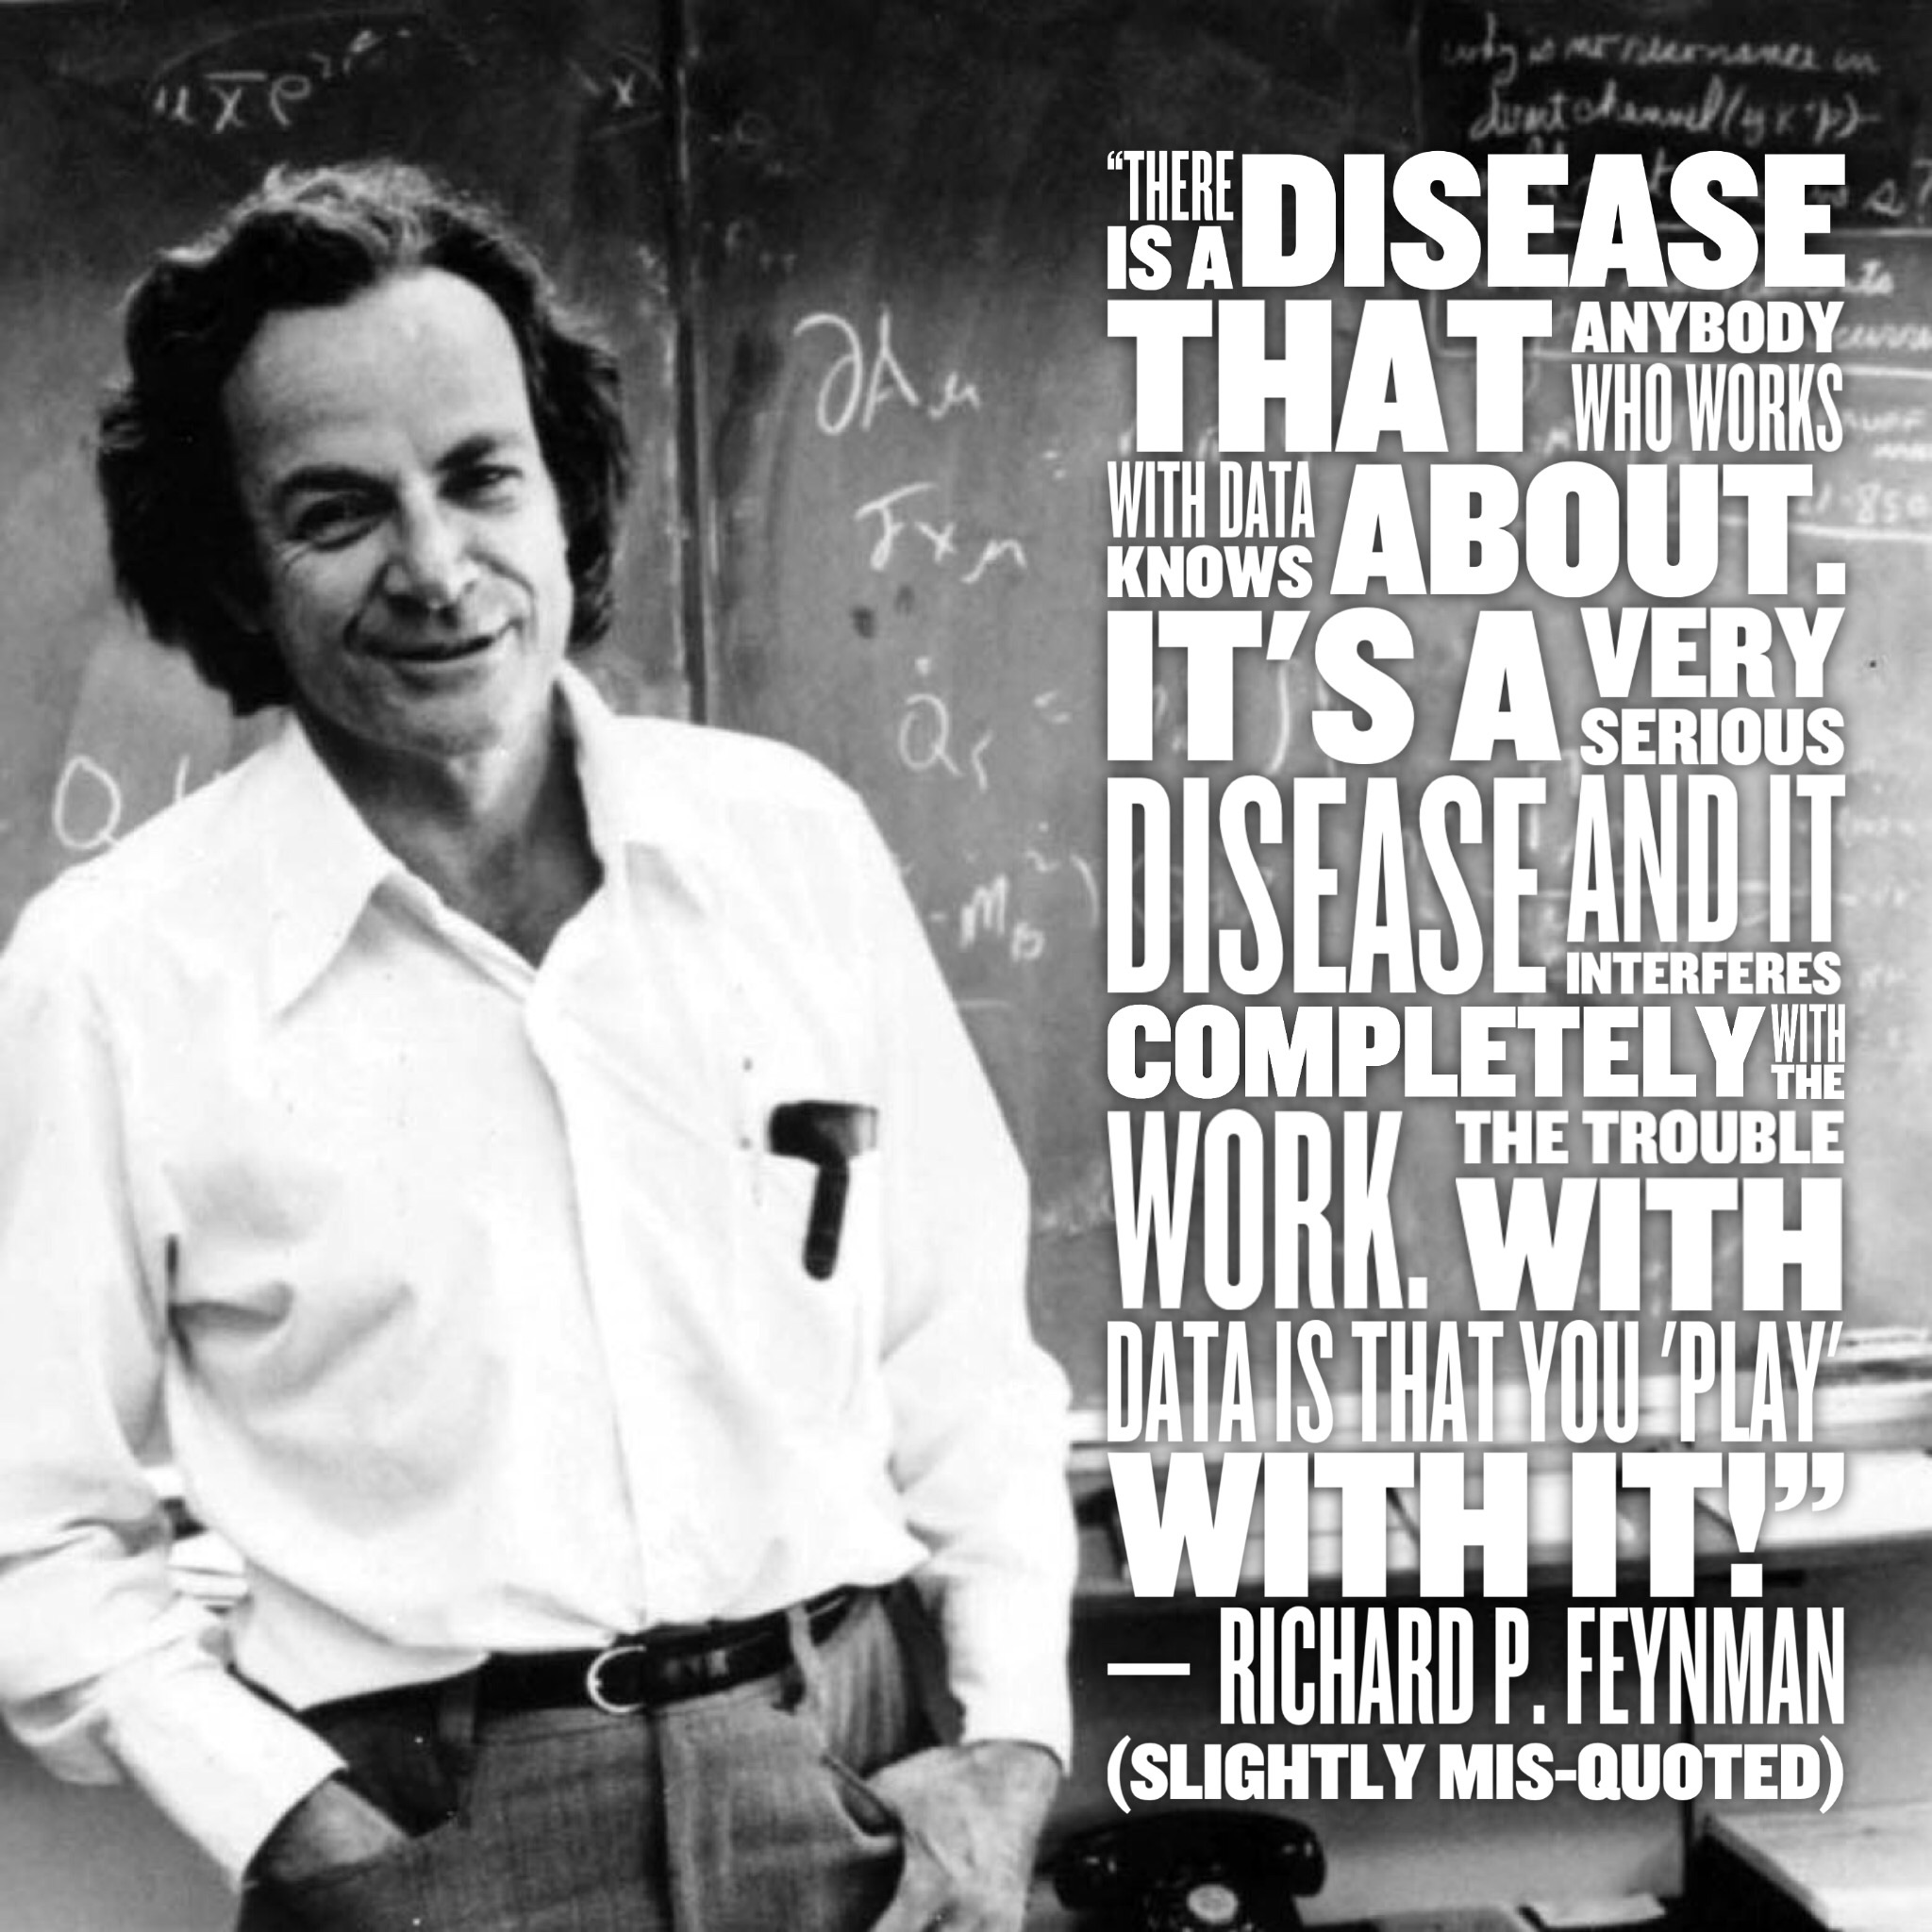 Picture of Richard Feynman with quote